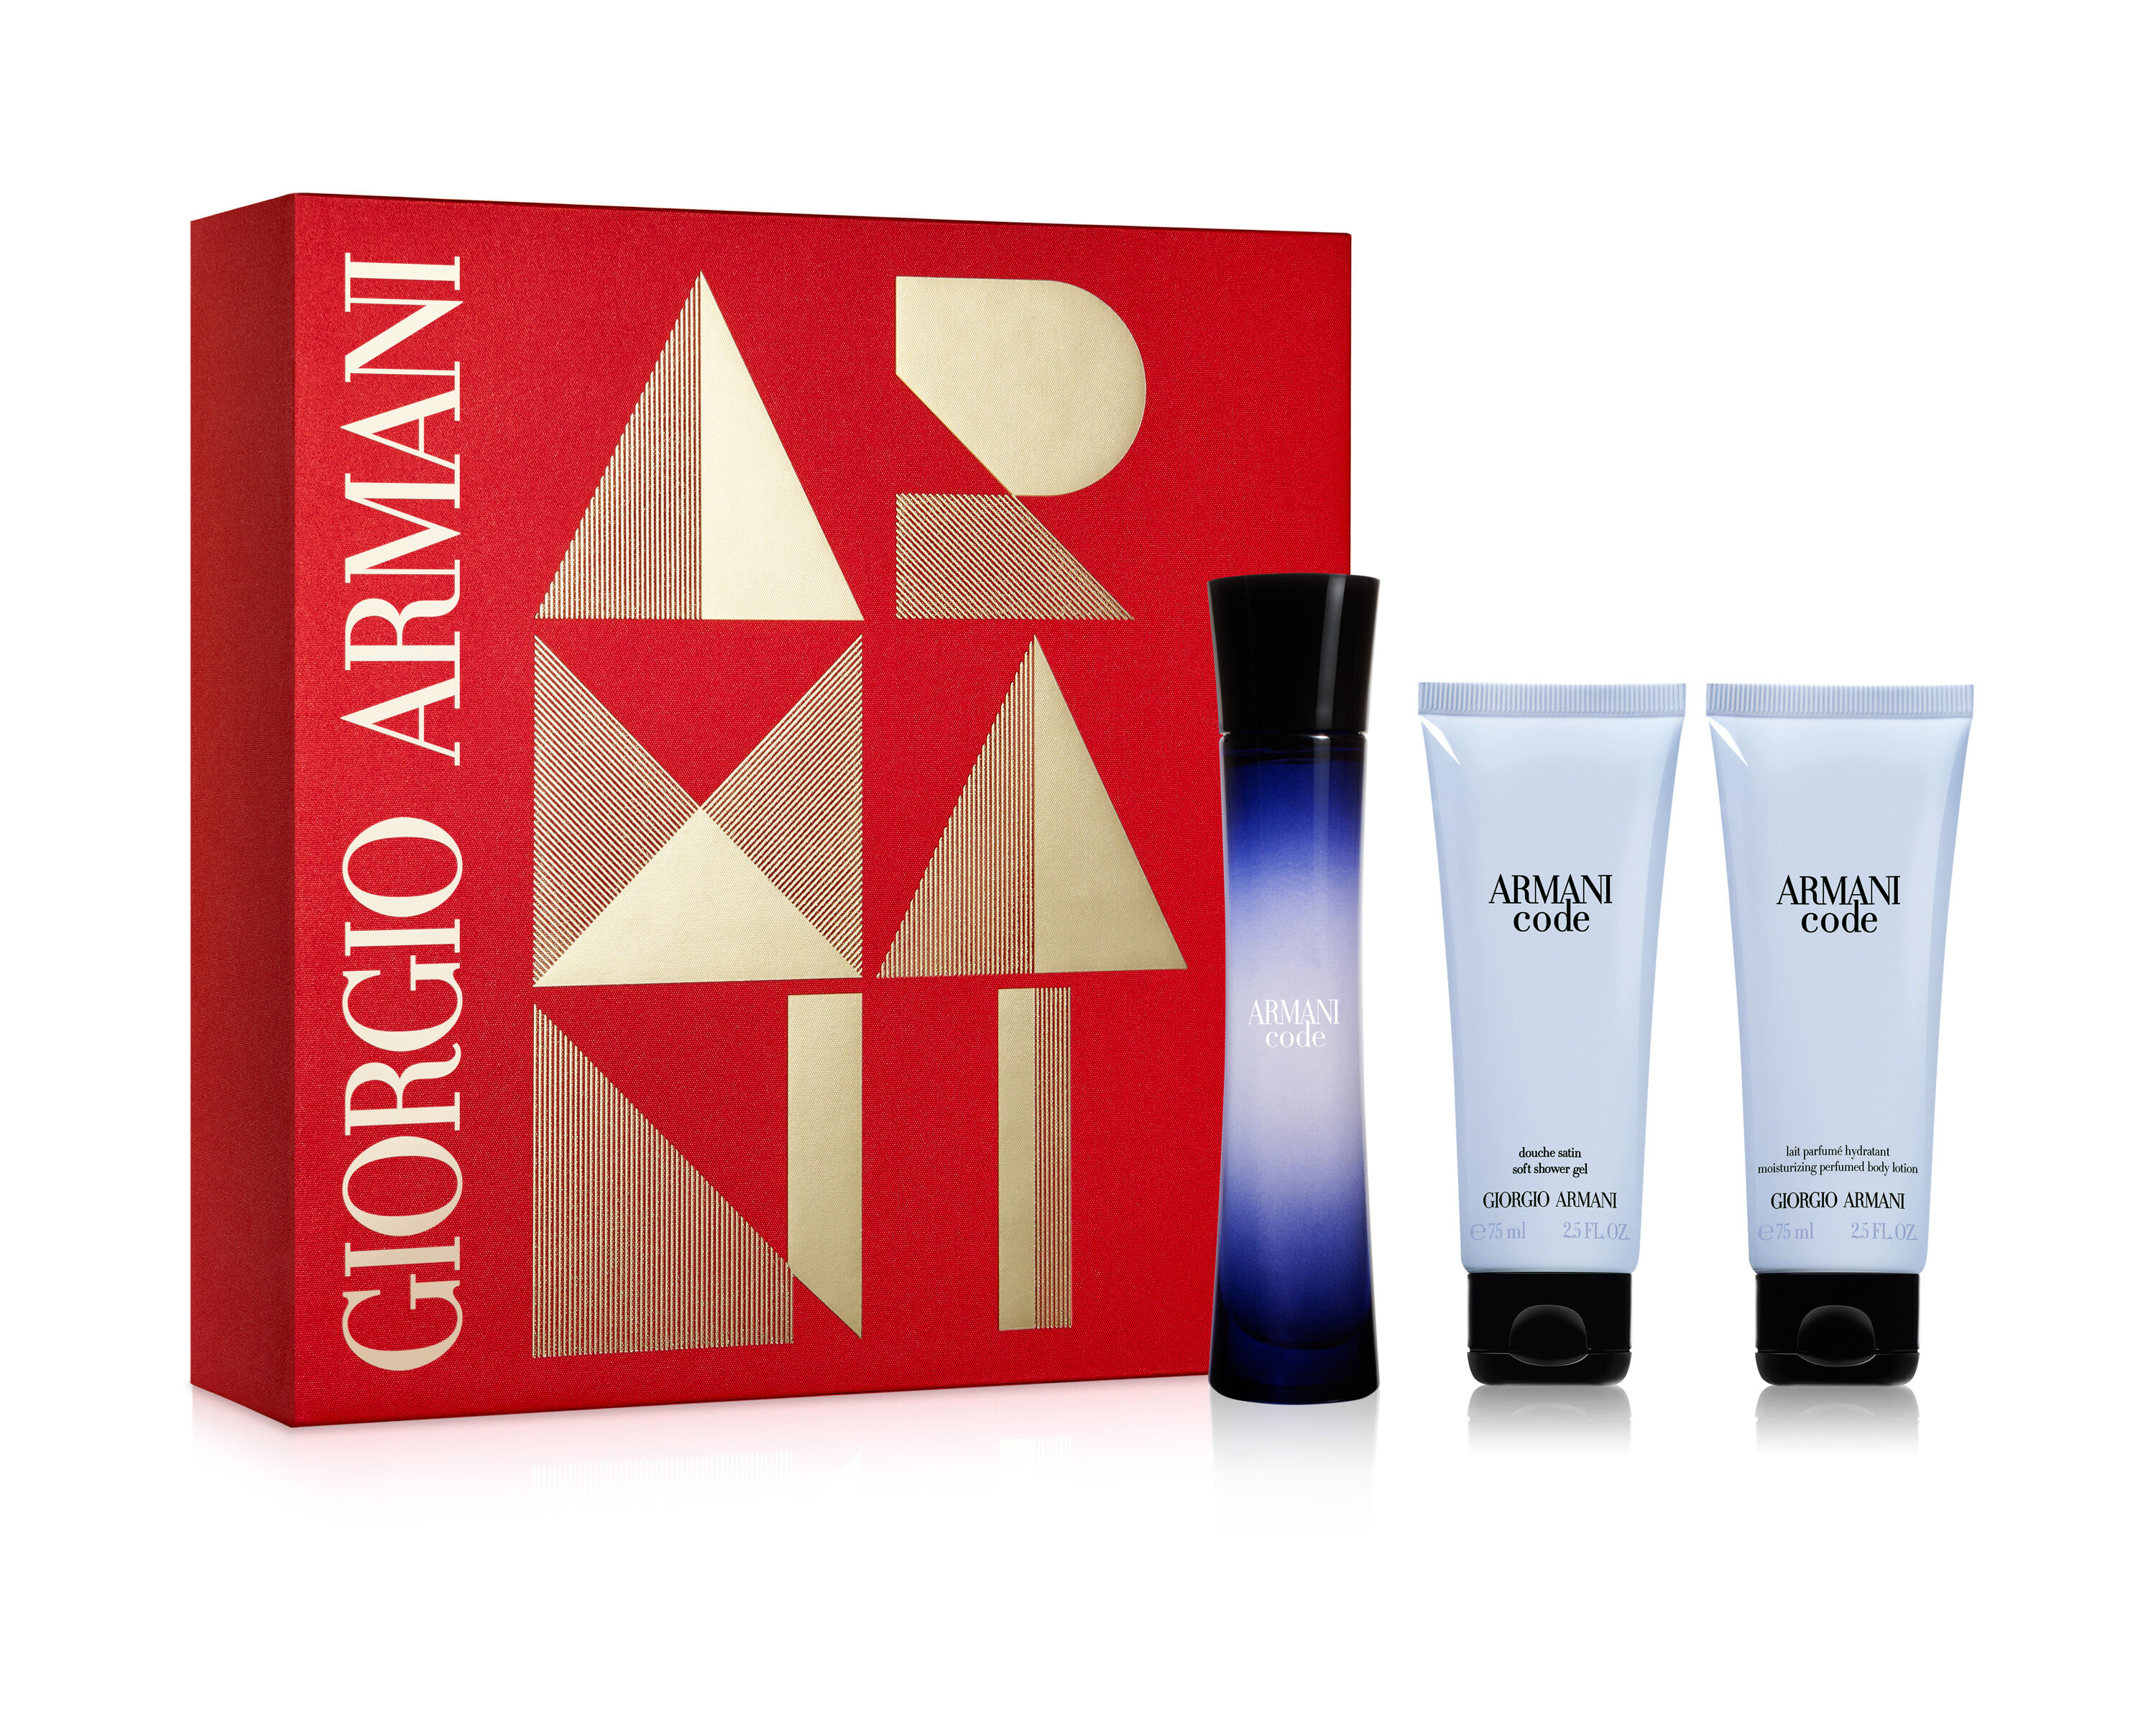 Armani Code Eau de Parfum Gift Set for her luxury variant by Giorgio Armani Beauty  sc 1 st  Giorgio Armani Beauty & Armani Code Eau de Parfum Gift Set for her luxury variant by Giorgio ...